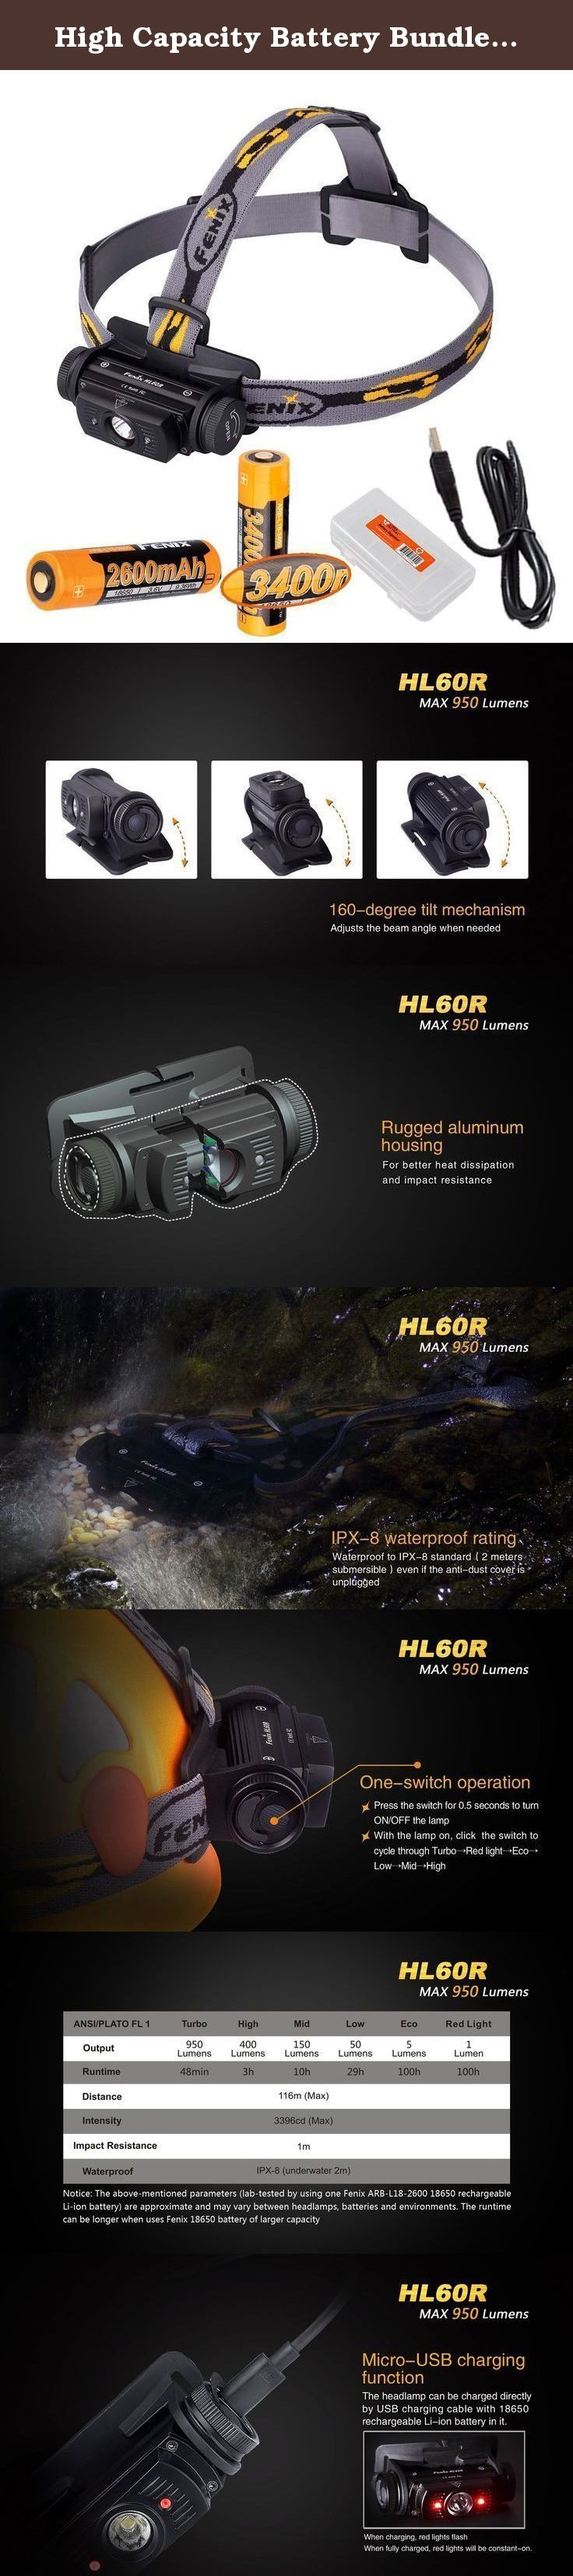 High Capacity Battery Bundle: Fenix HL60R 950 Lumens Rechargeable LED Headlamp with Extra 3400mAh 18650 Battery, USB Charging cable and Lumen Tactical Battery Organizer. The HL60R headlamp is the first USB rechargeable light in Fenix's HL Series. Operating off of one 18650 battery or two CR123A batteries, this light can stay in Turbo mode for nearly an hour and in Eco mode for over 100 hours. The Cree XM-L2 T6 neutral white LED bulb means superior definition and penetration in…